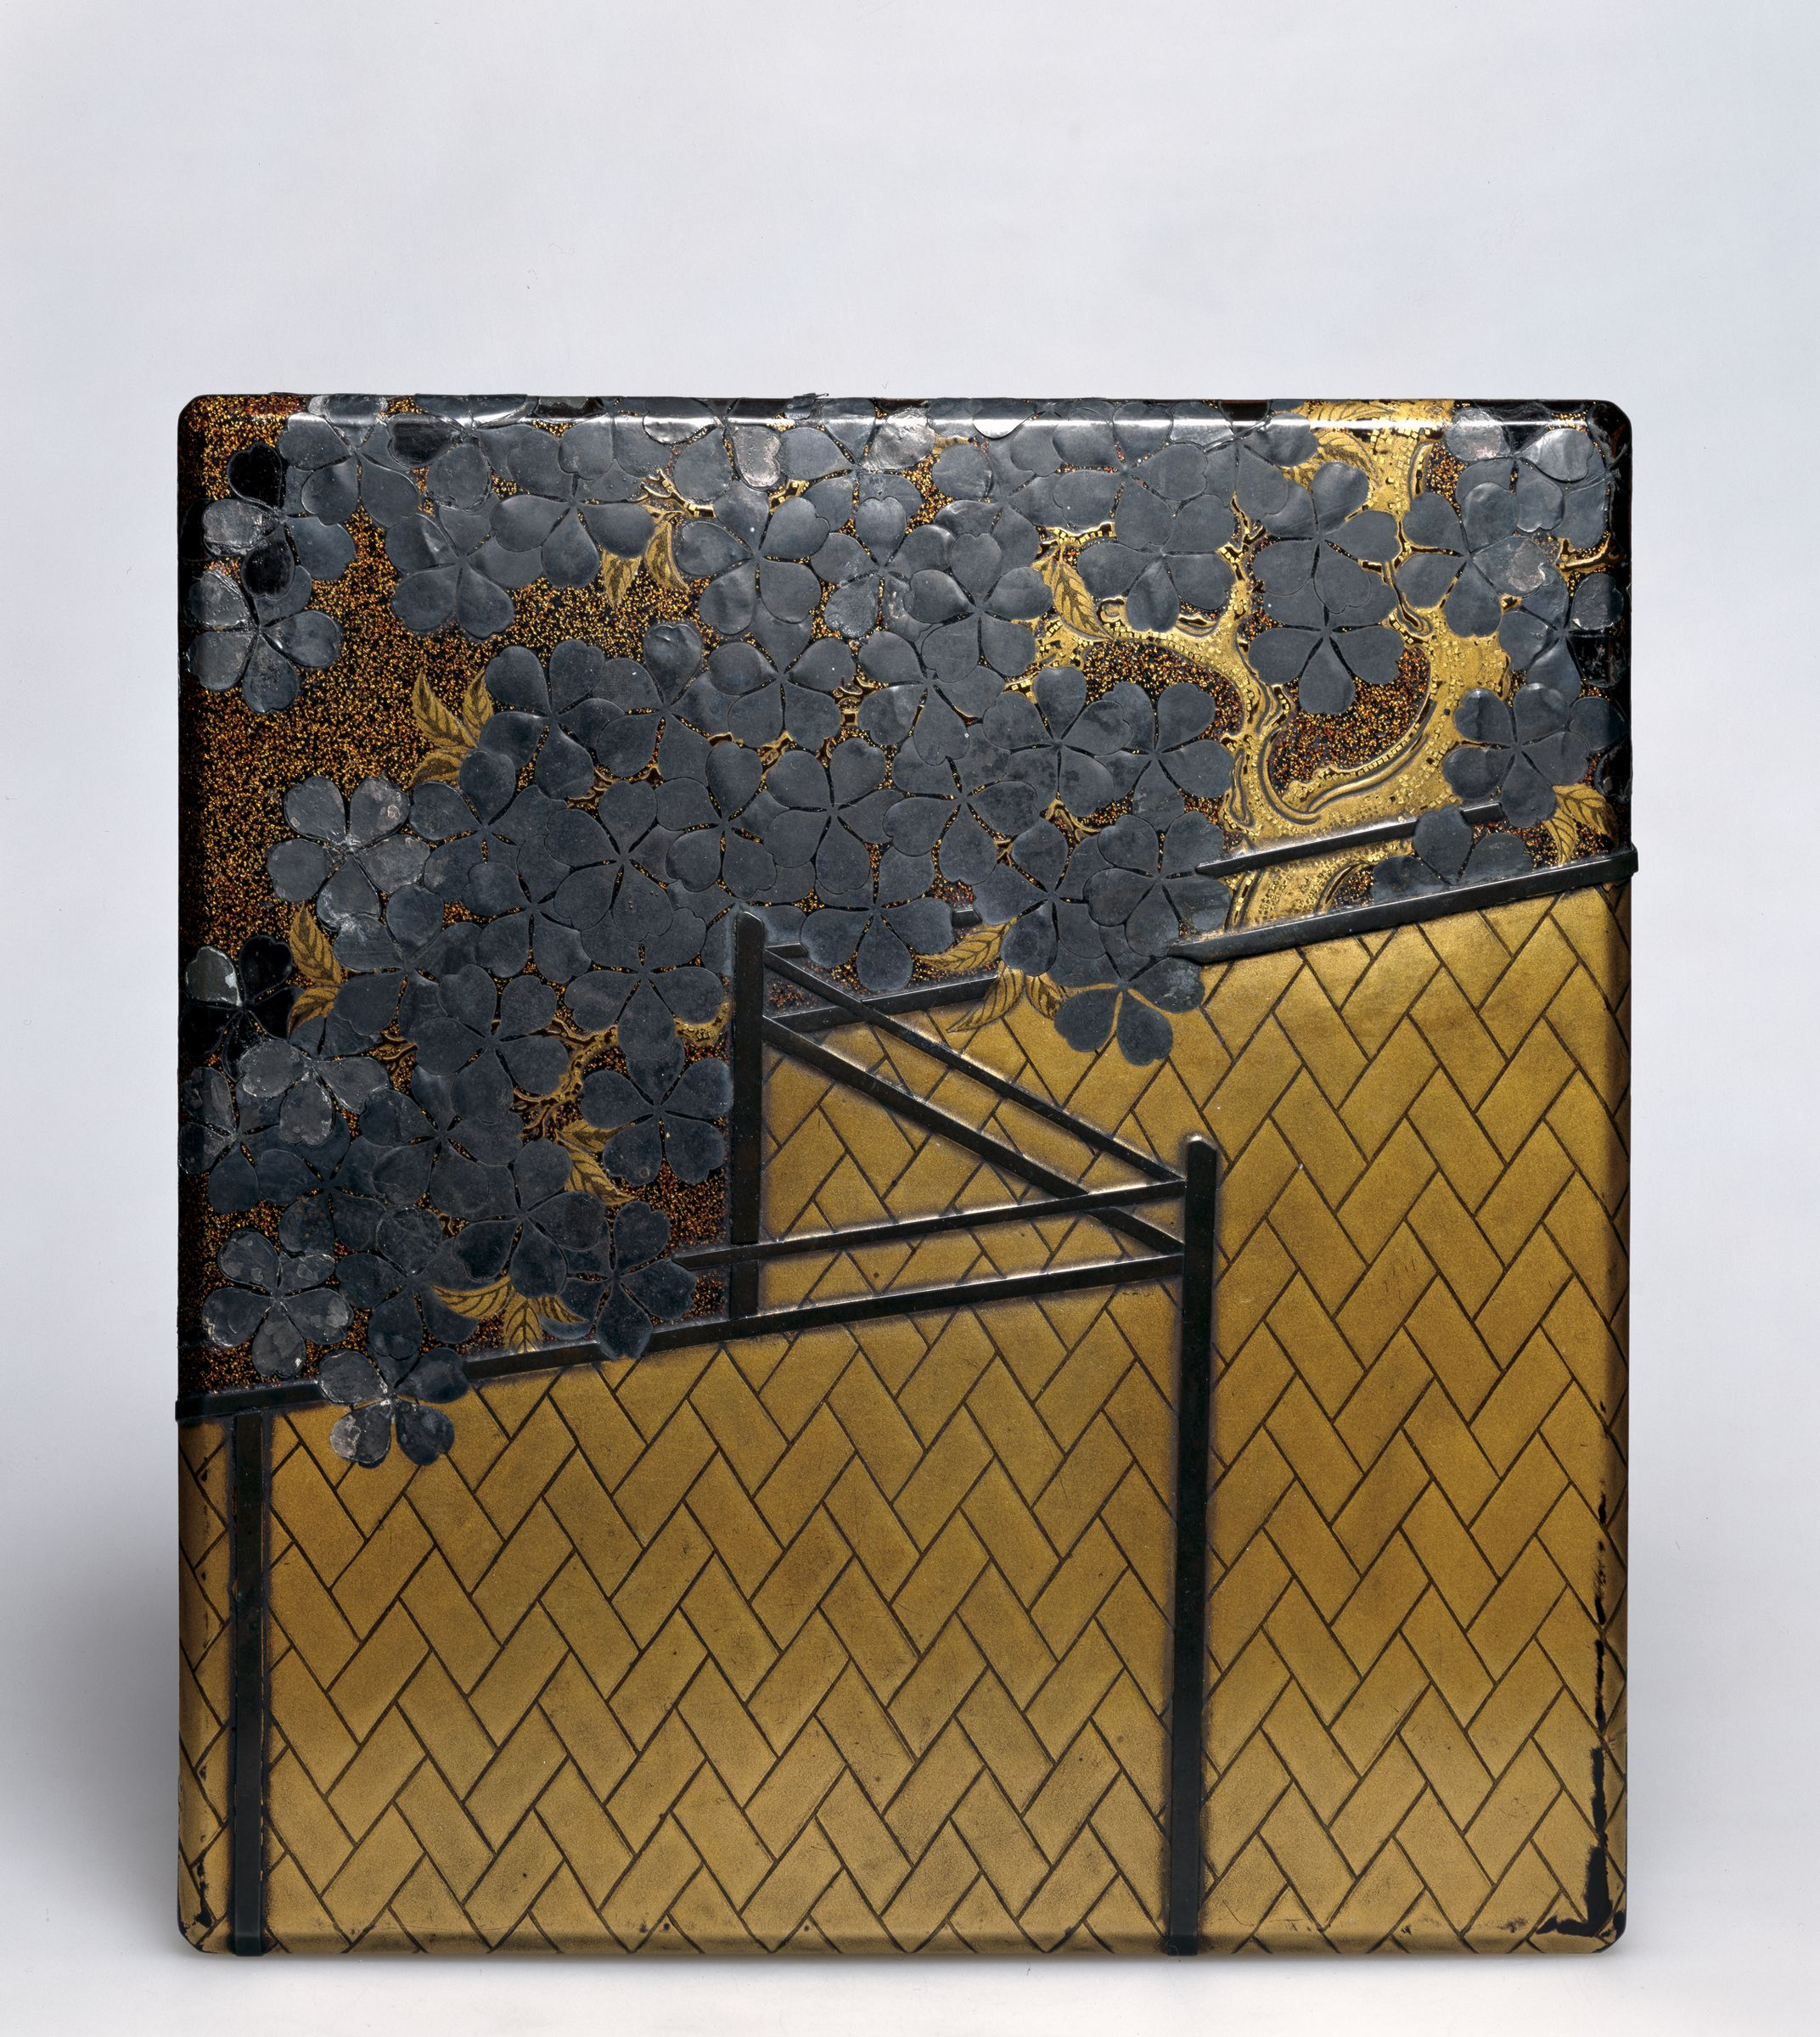 Inkstone Box (Suzuribako) With Cherry Blossom And Fence Design